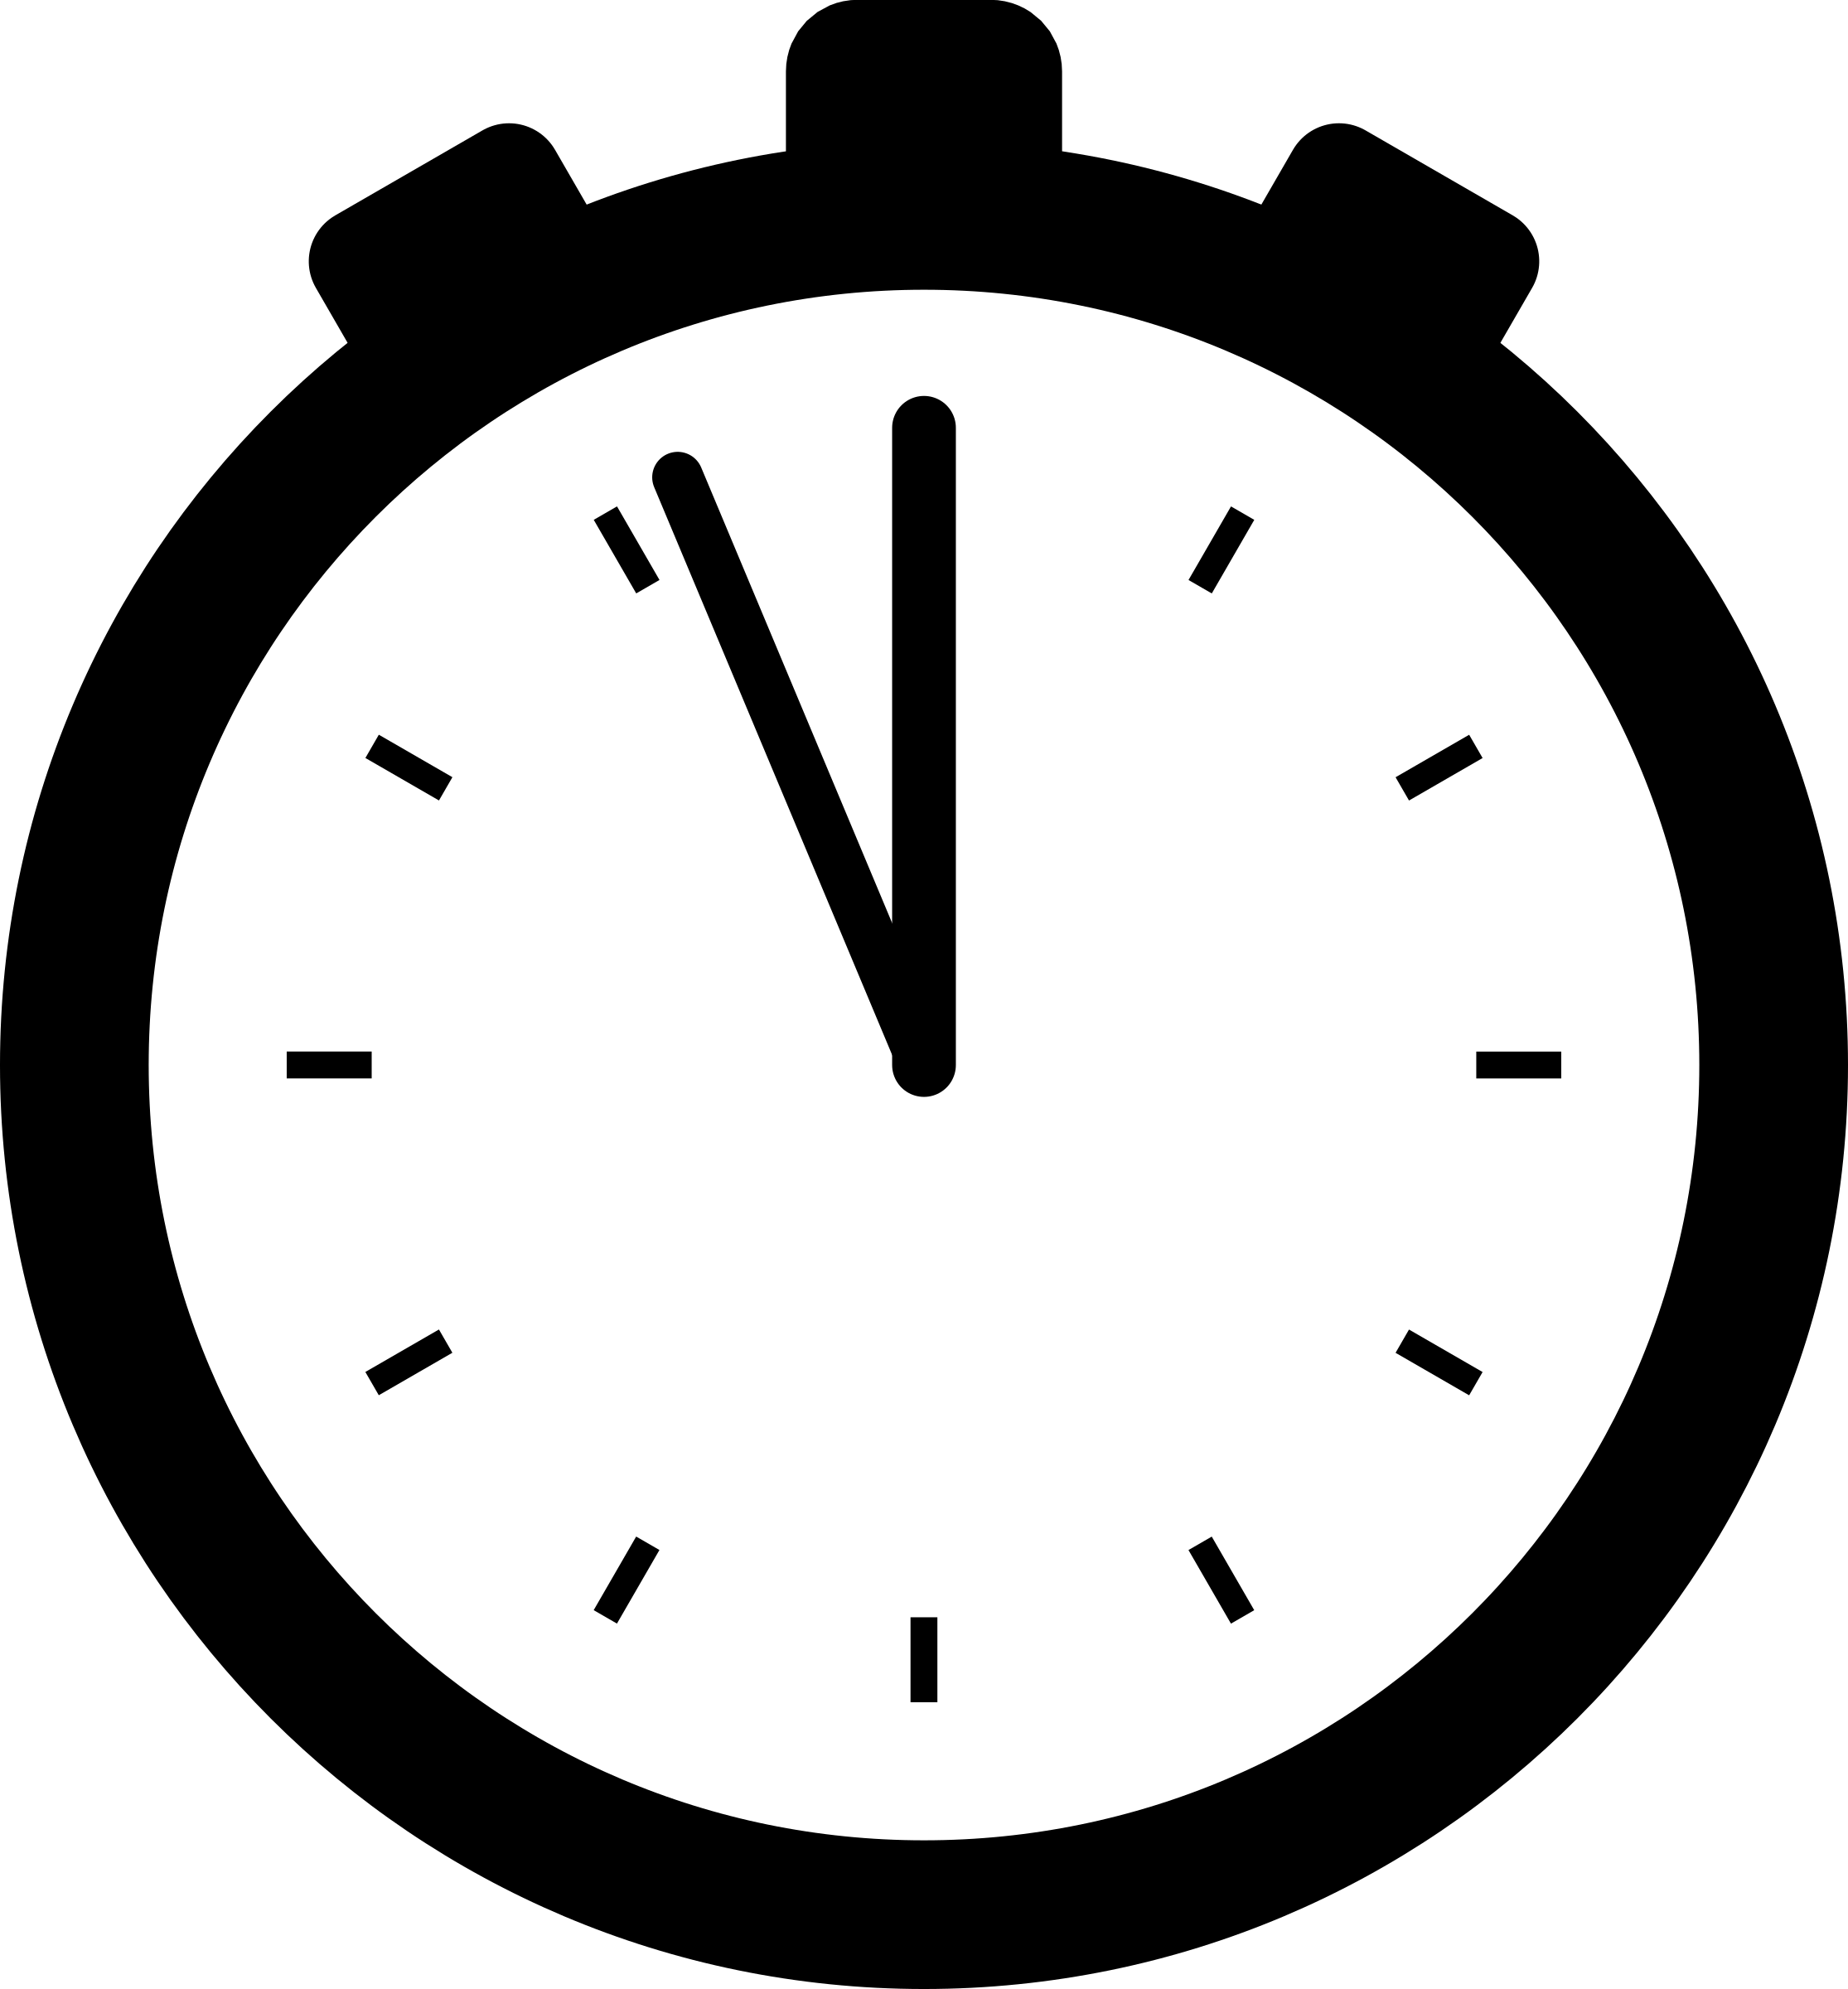 Transparent stopwatch blank. Png silhouette huge